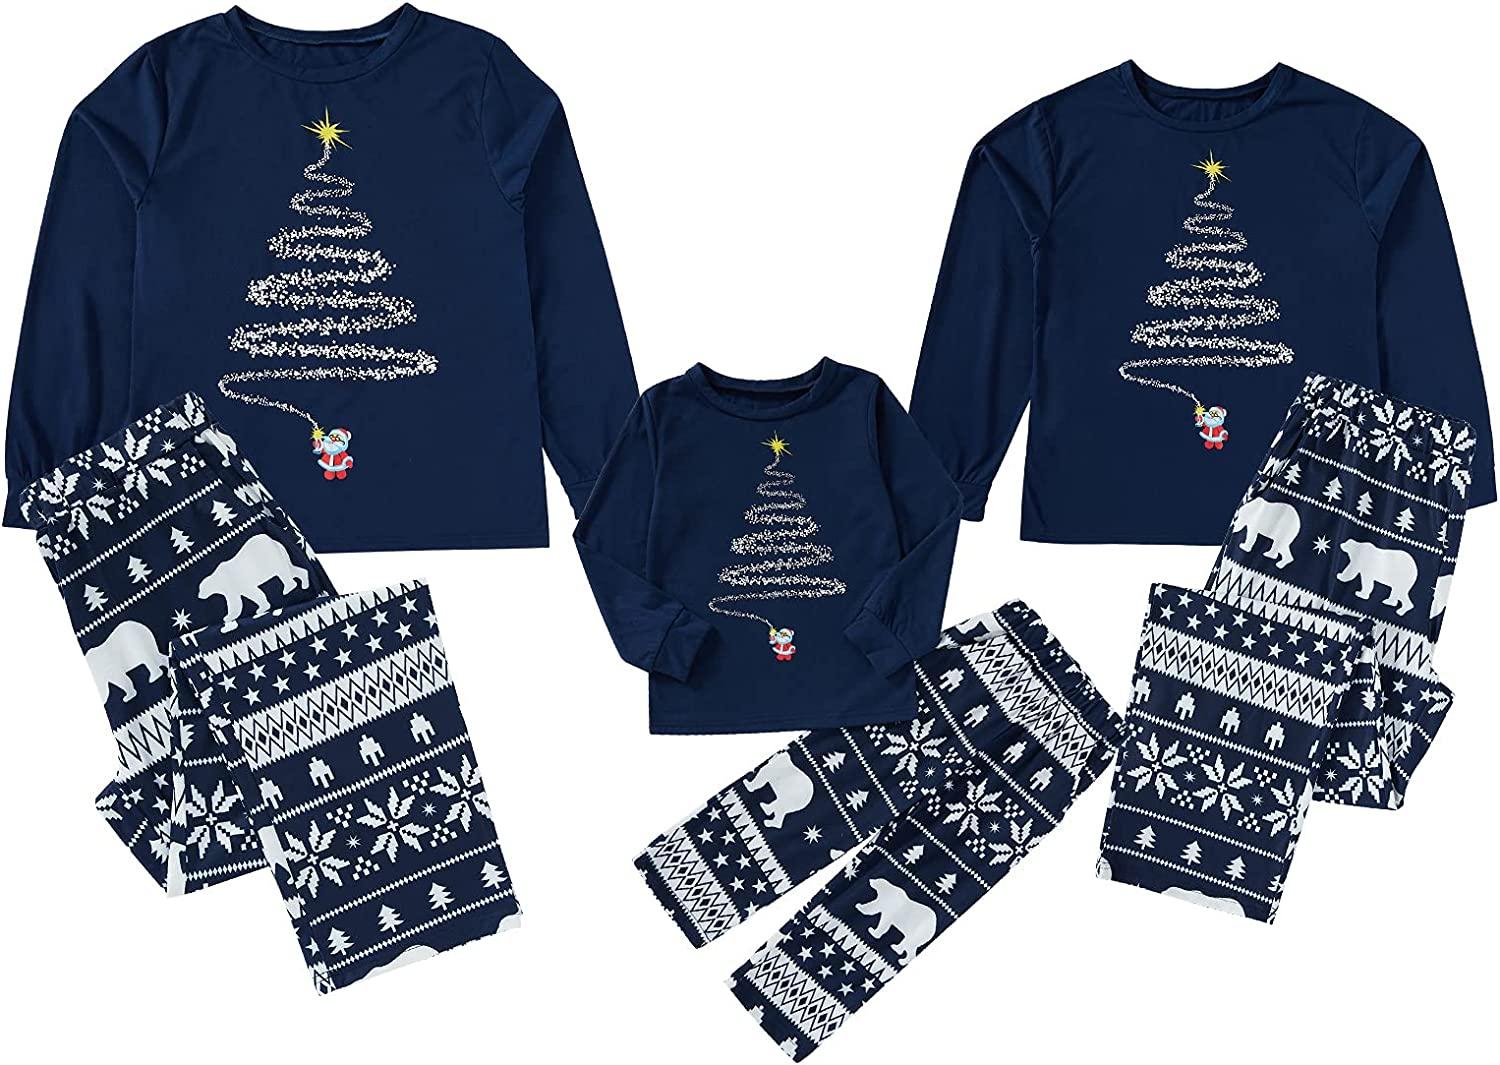 Christmas Matching Family Pjs Outfits Long Sleeve Sleepwear Xmas Pants Clothes Loungewear Outfit